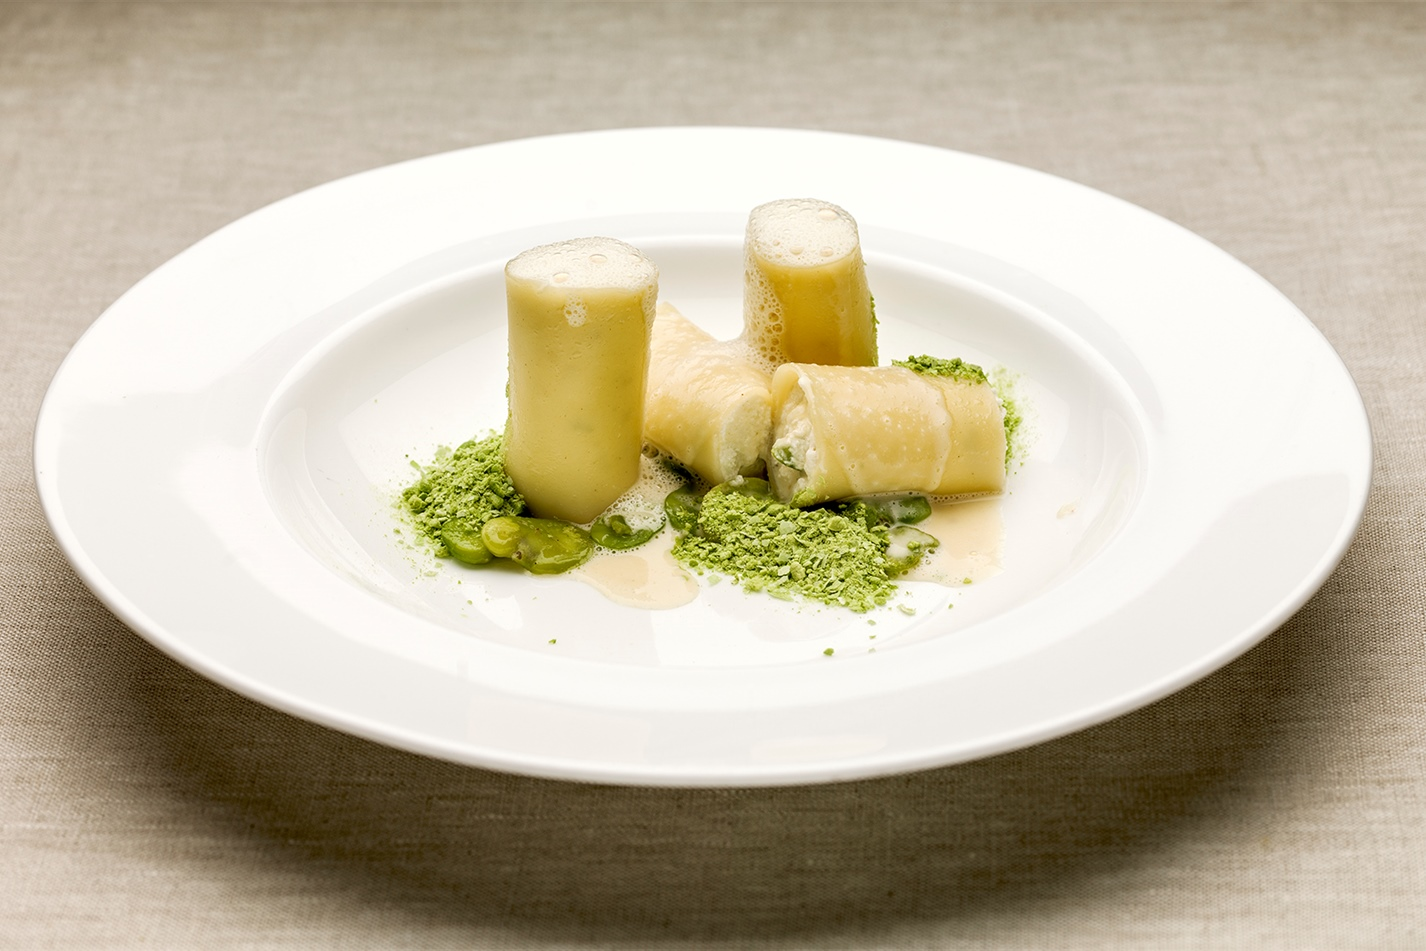 Mark Delia, Spain – Cannelloni with ricotta, broad beans and truffle foam